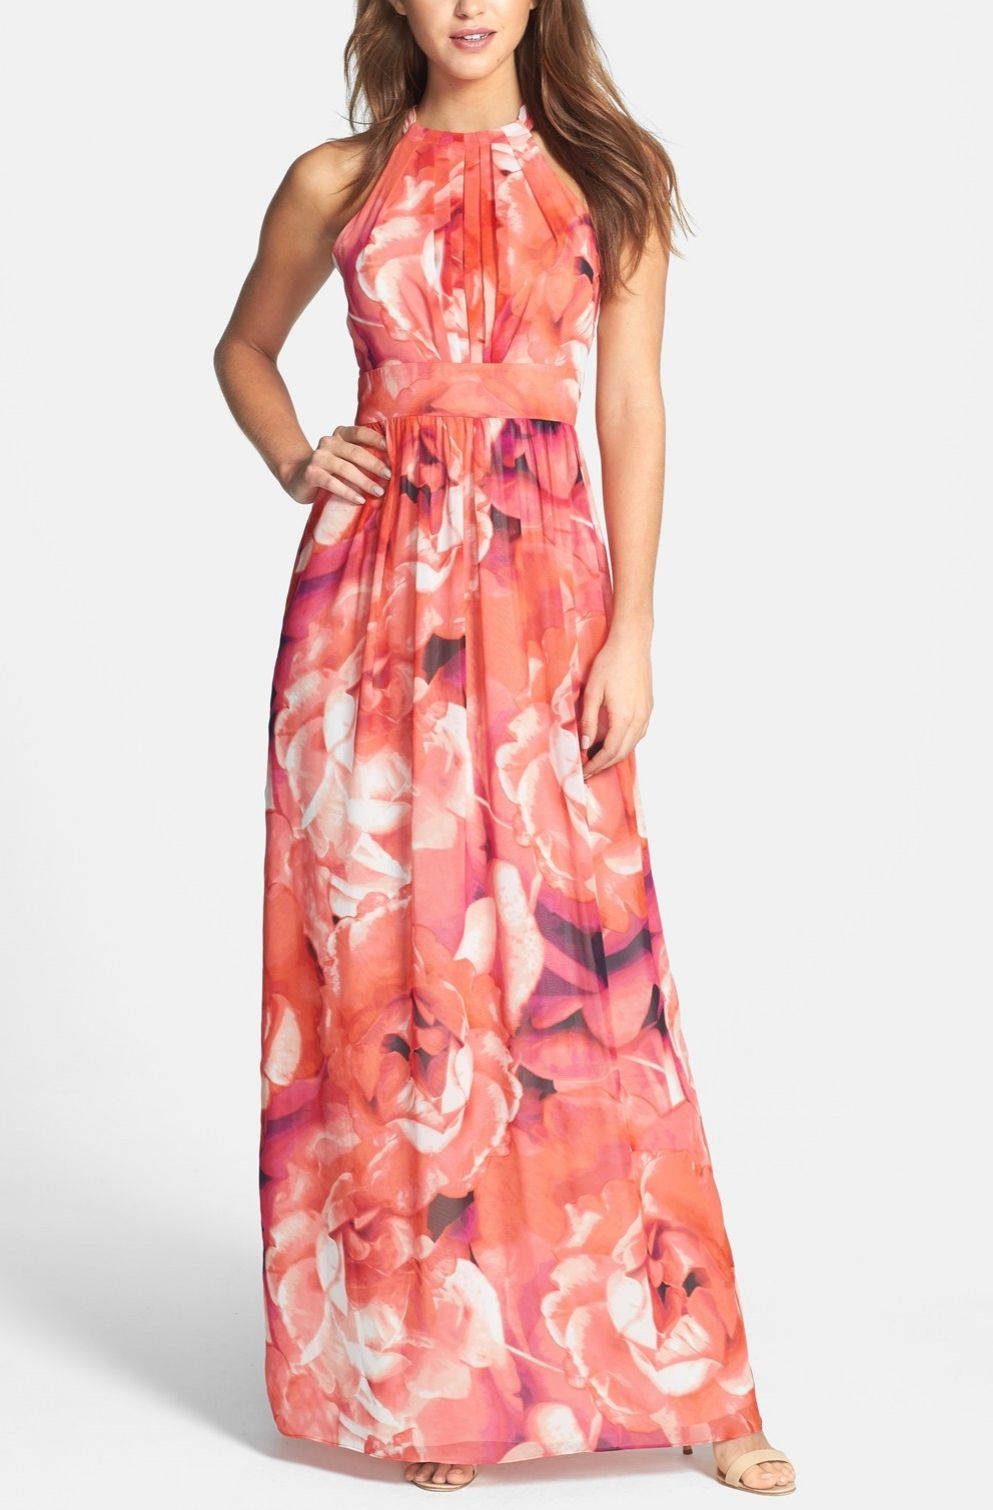 Lovely pink chiffon maxi dress. @nordstrom #nordstrom #summerdress ...